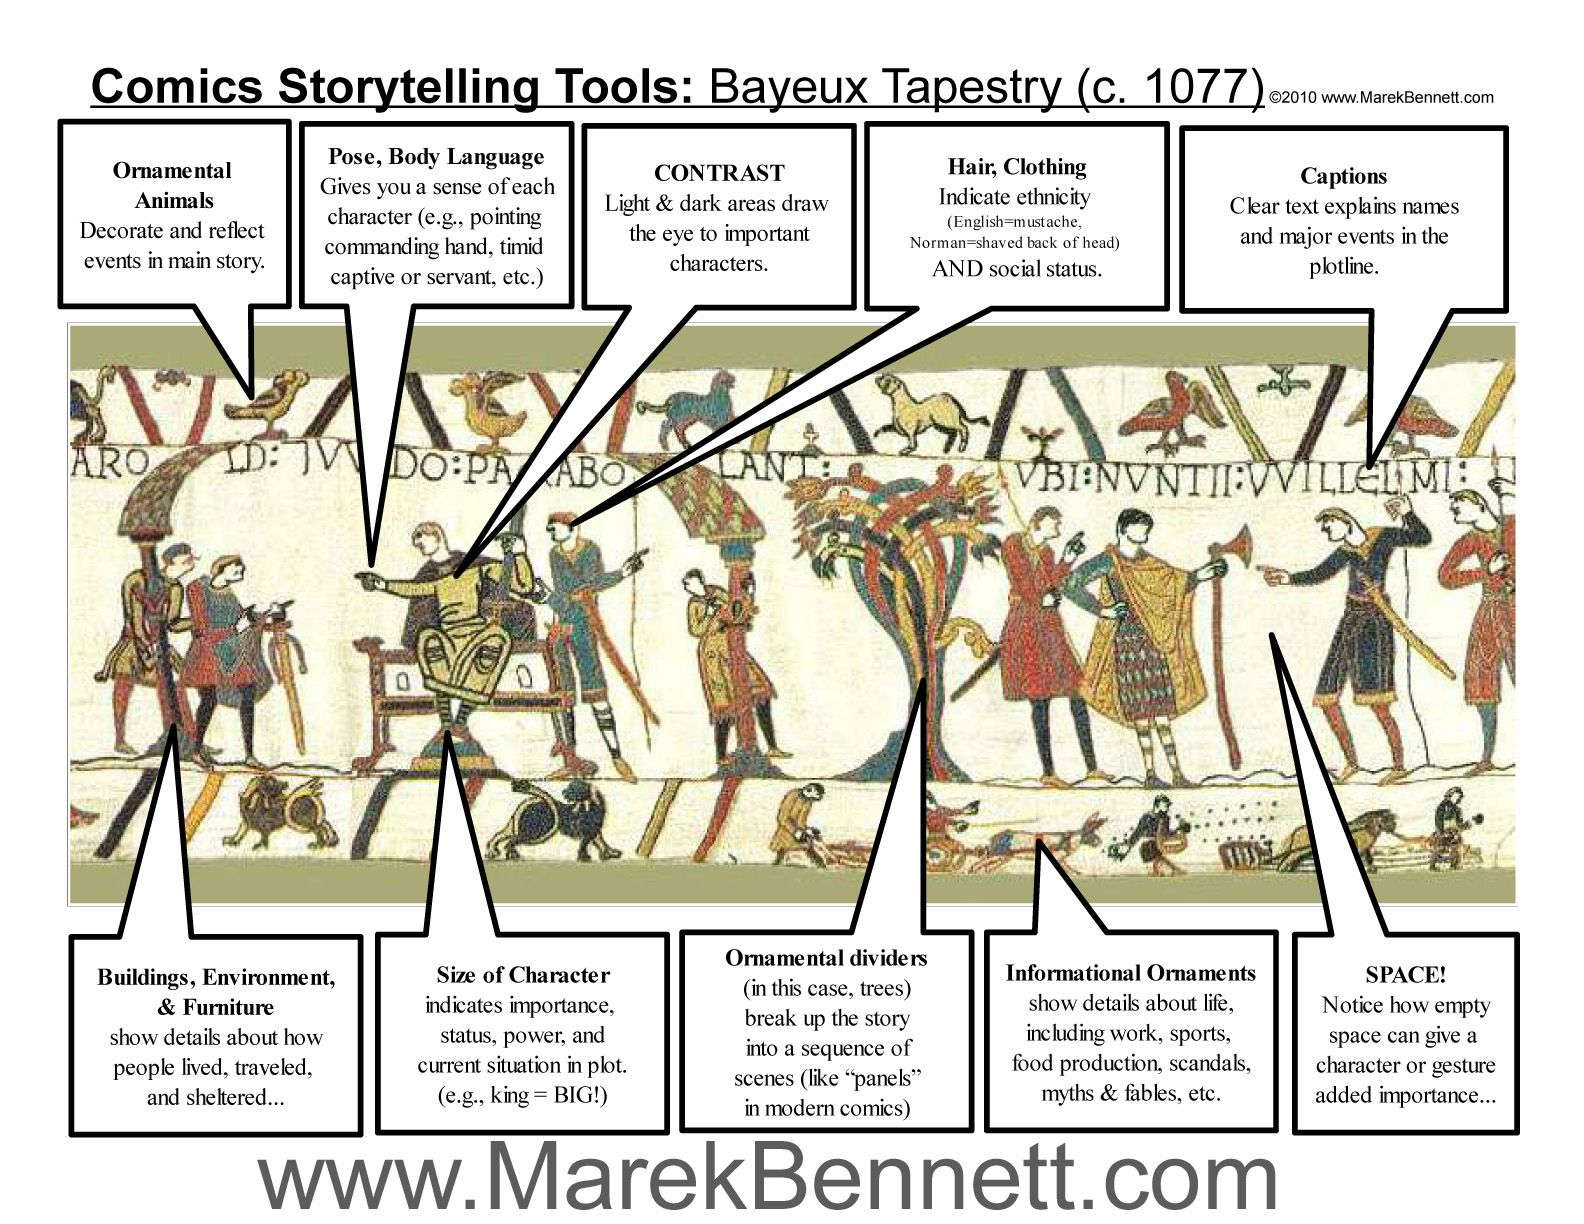 Narrative Devices In 59 Bayeux Tapestry Romanesque